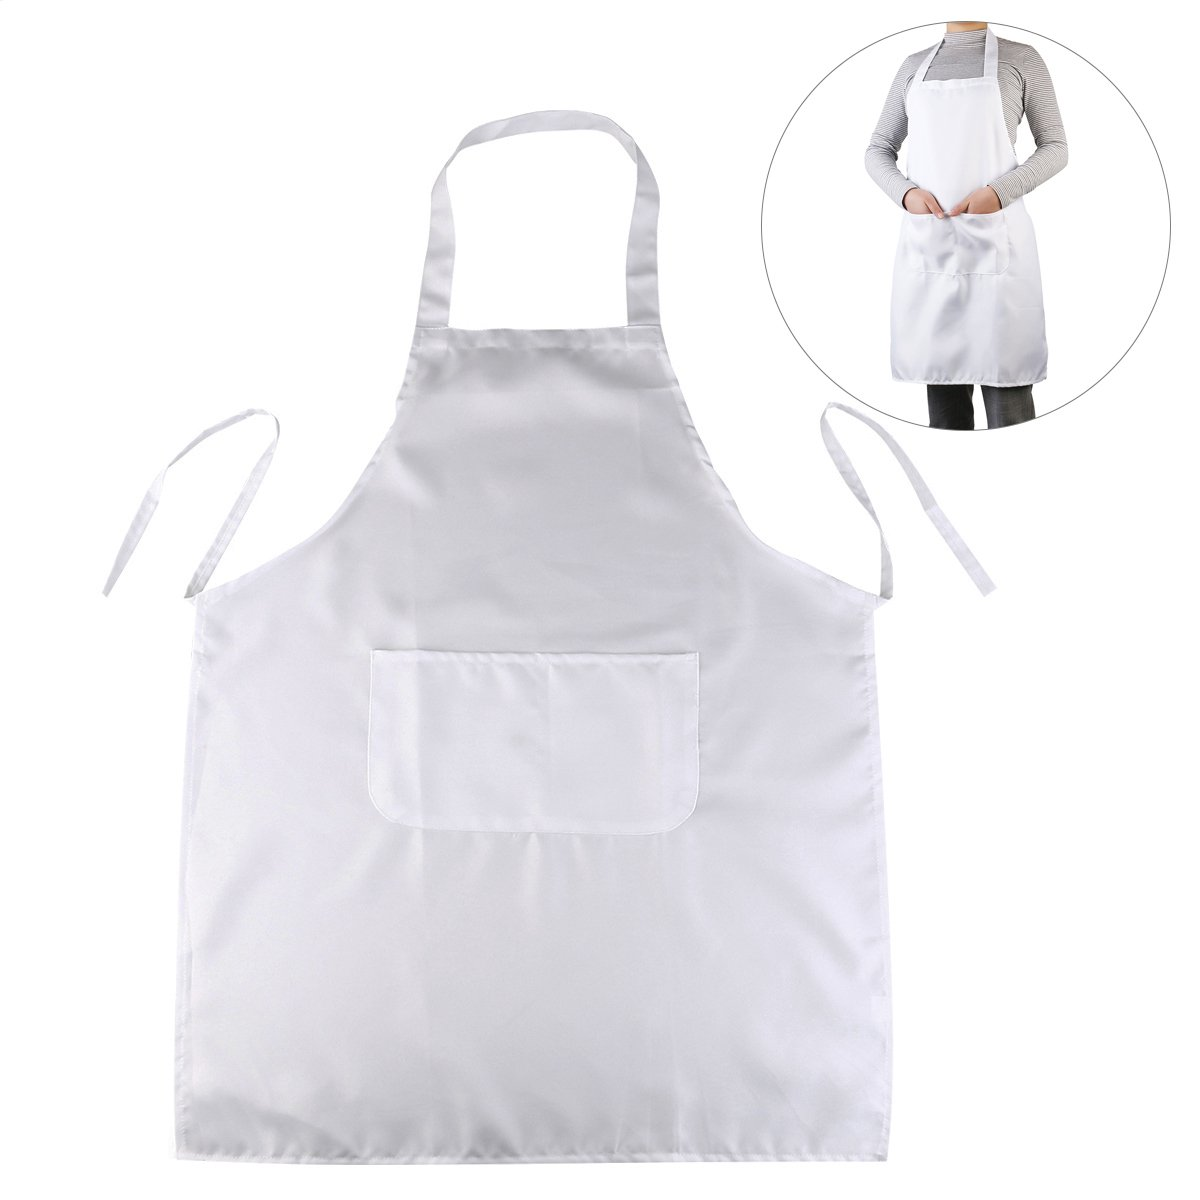 ULTNICE Halter-Neck Style Sleeveless Kitchen Cooking Apron with Pocket (White)